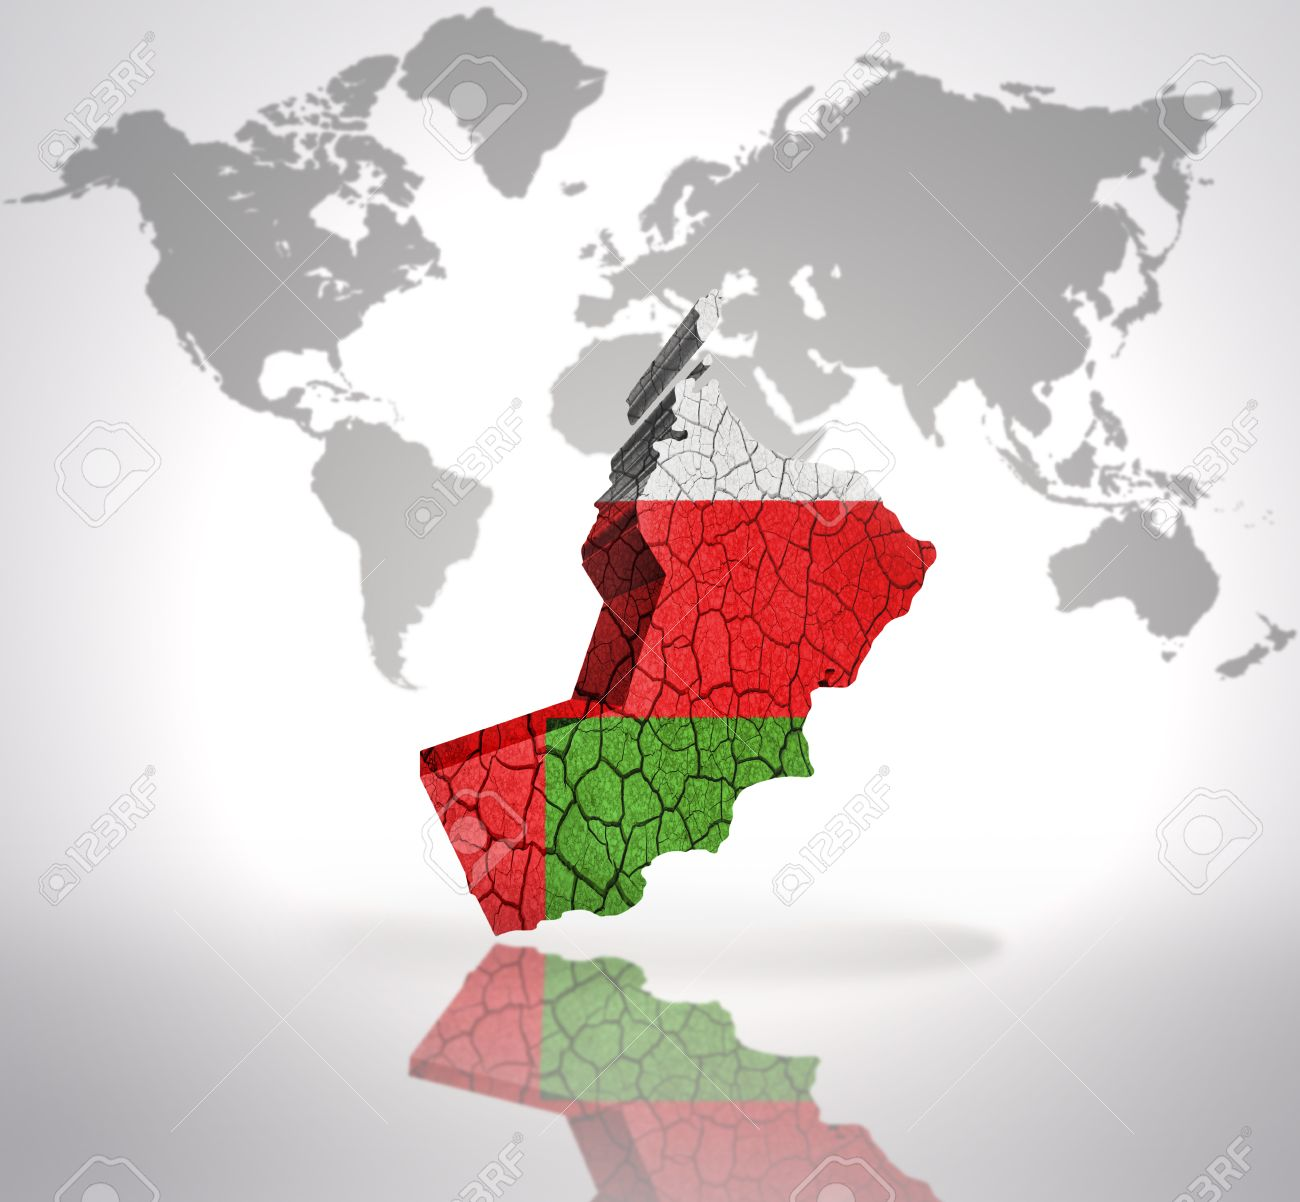 Map of oman with oman flag on a world map background stock photo map of oman with oman flag on a world map background stock photo 32849776 gumiabroncs Choice Image